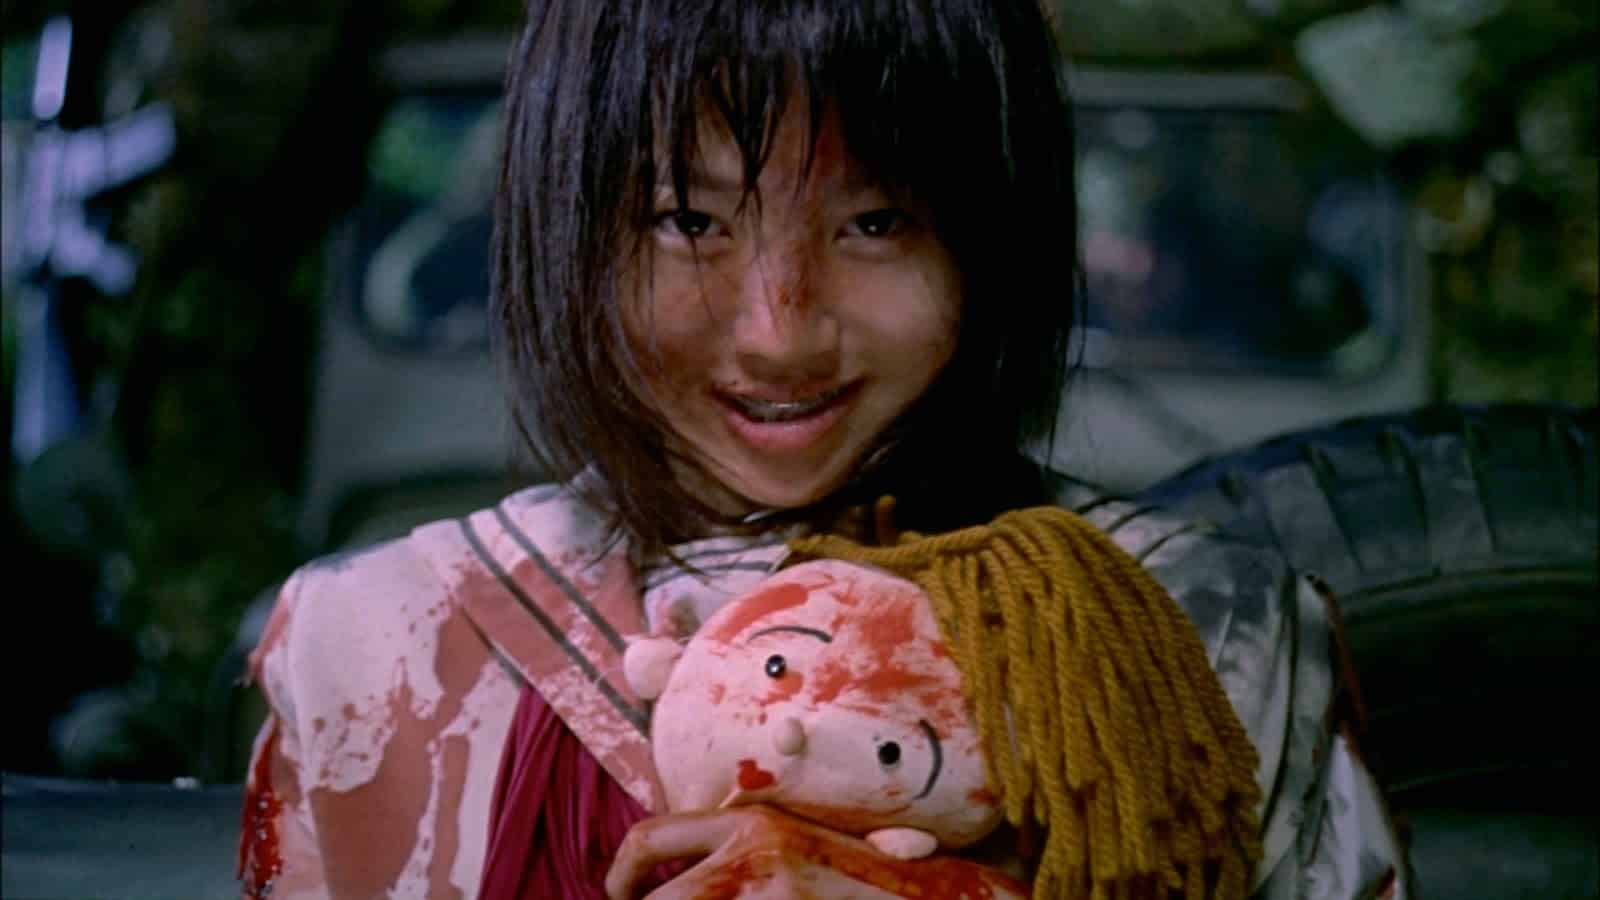 Kinji Fukasaku Battle Royale superior to The Hunger Games, Divergent, Maze Runner with raw, real brutality and betrayed teenagers